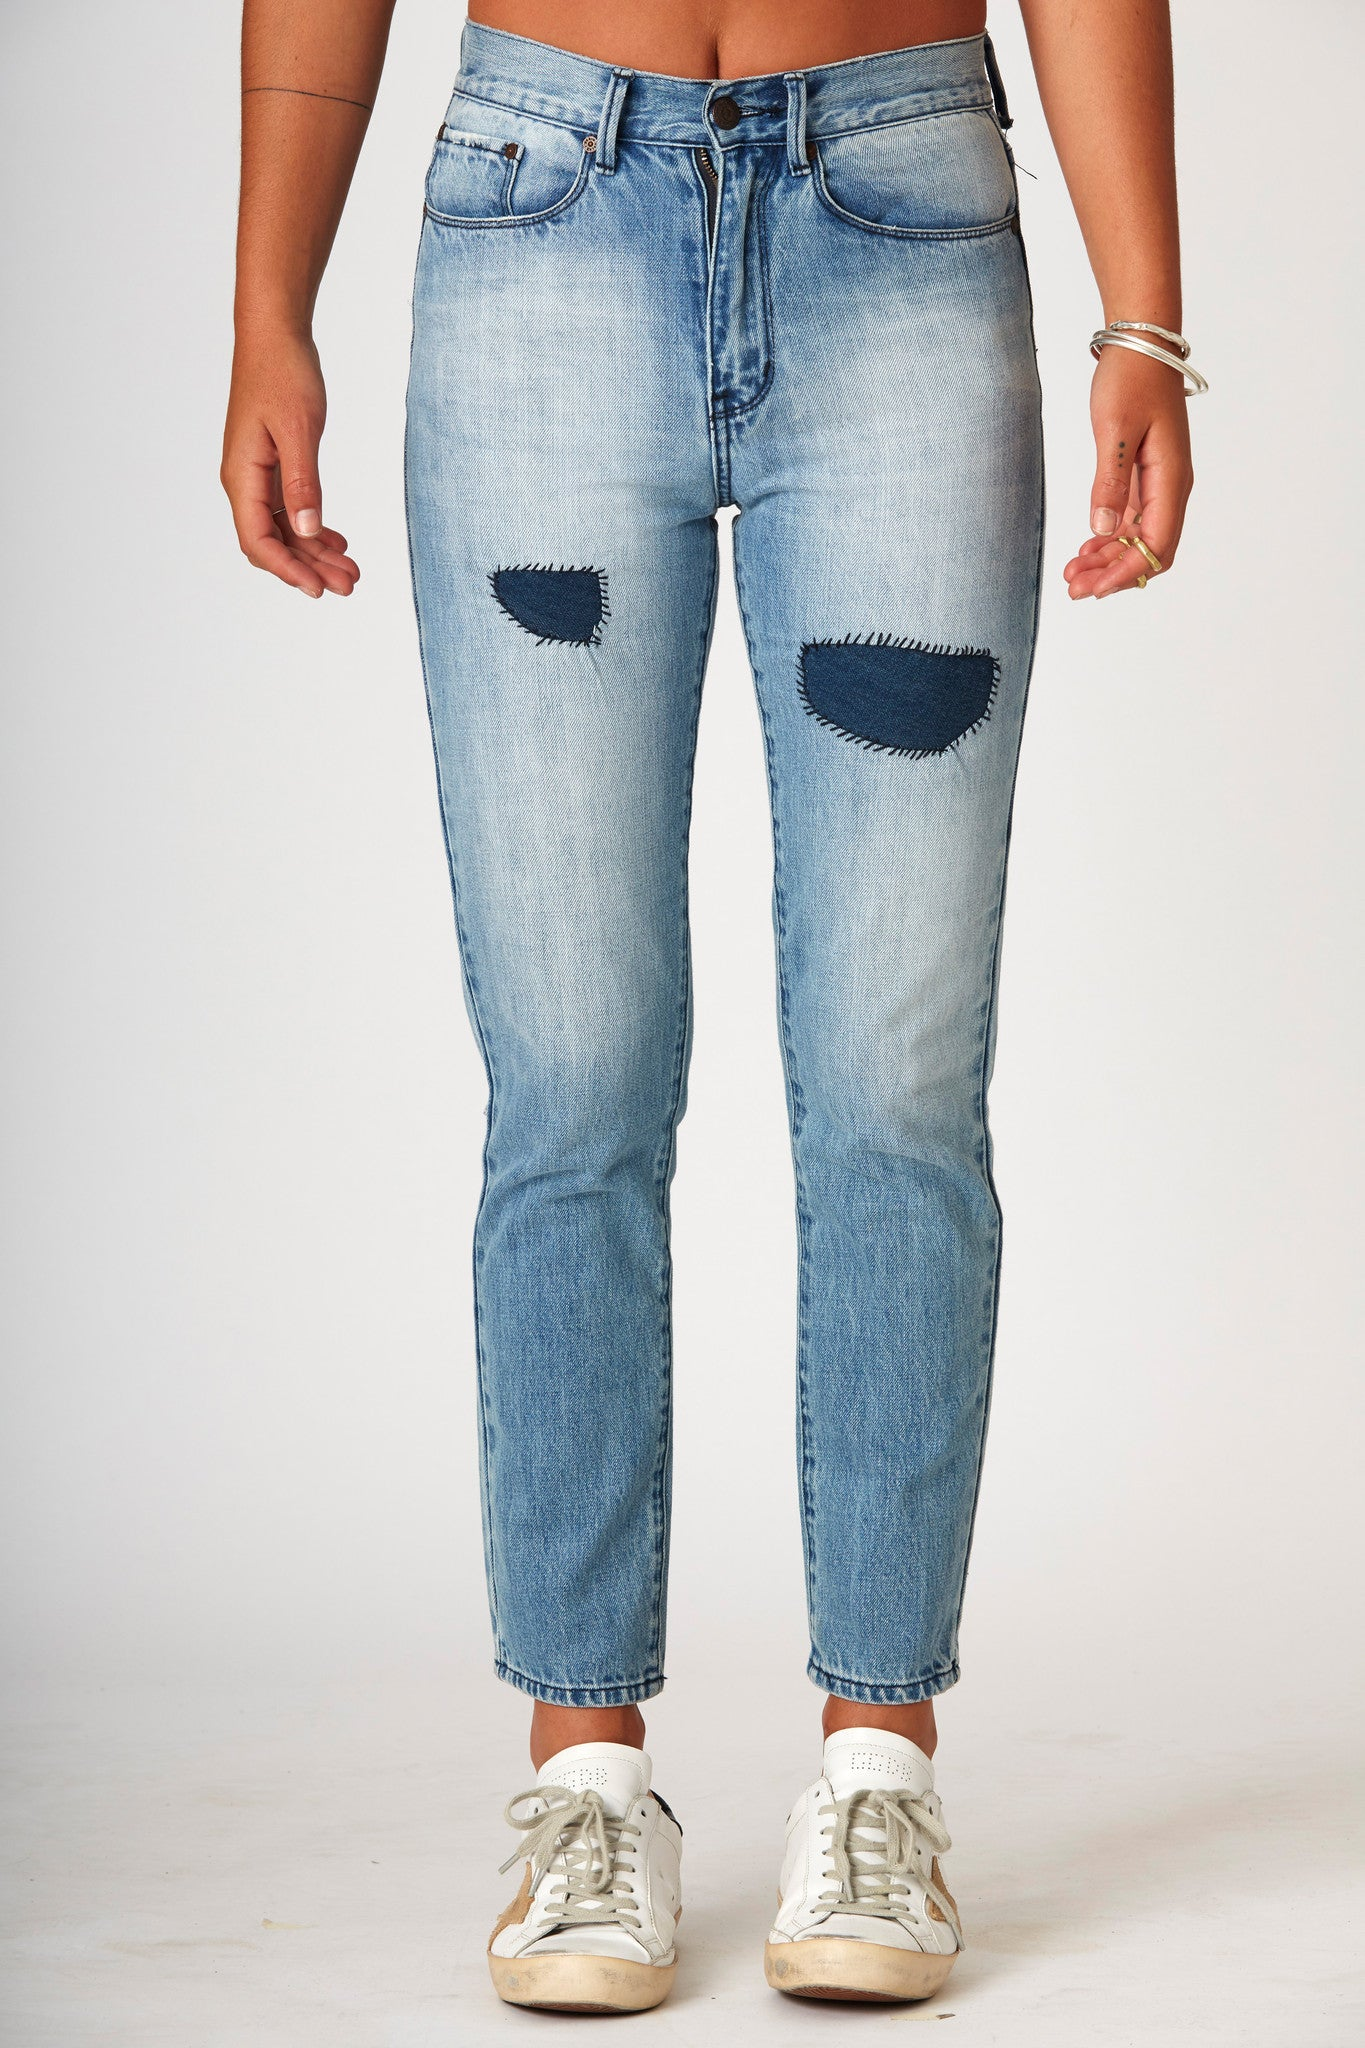 #3A33 Mid Slim Ankle Moon Blue Patch - denimcolab